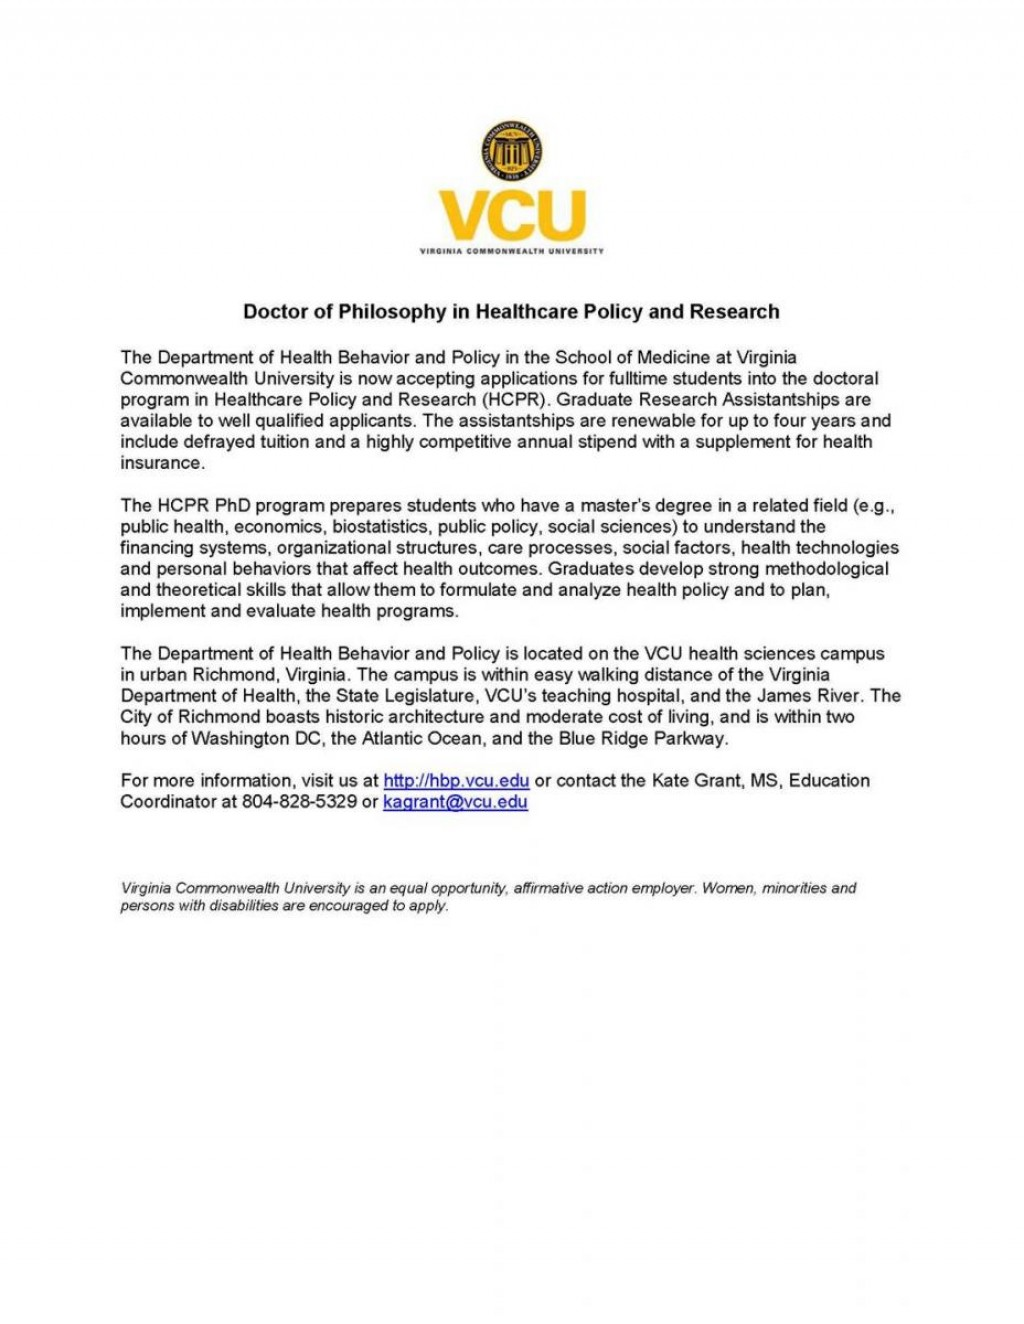 008 Vcu Personal Statement Essay Example Remarkable Large